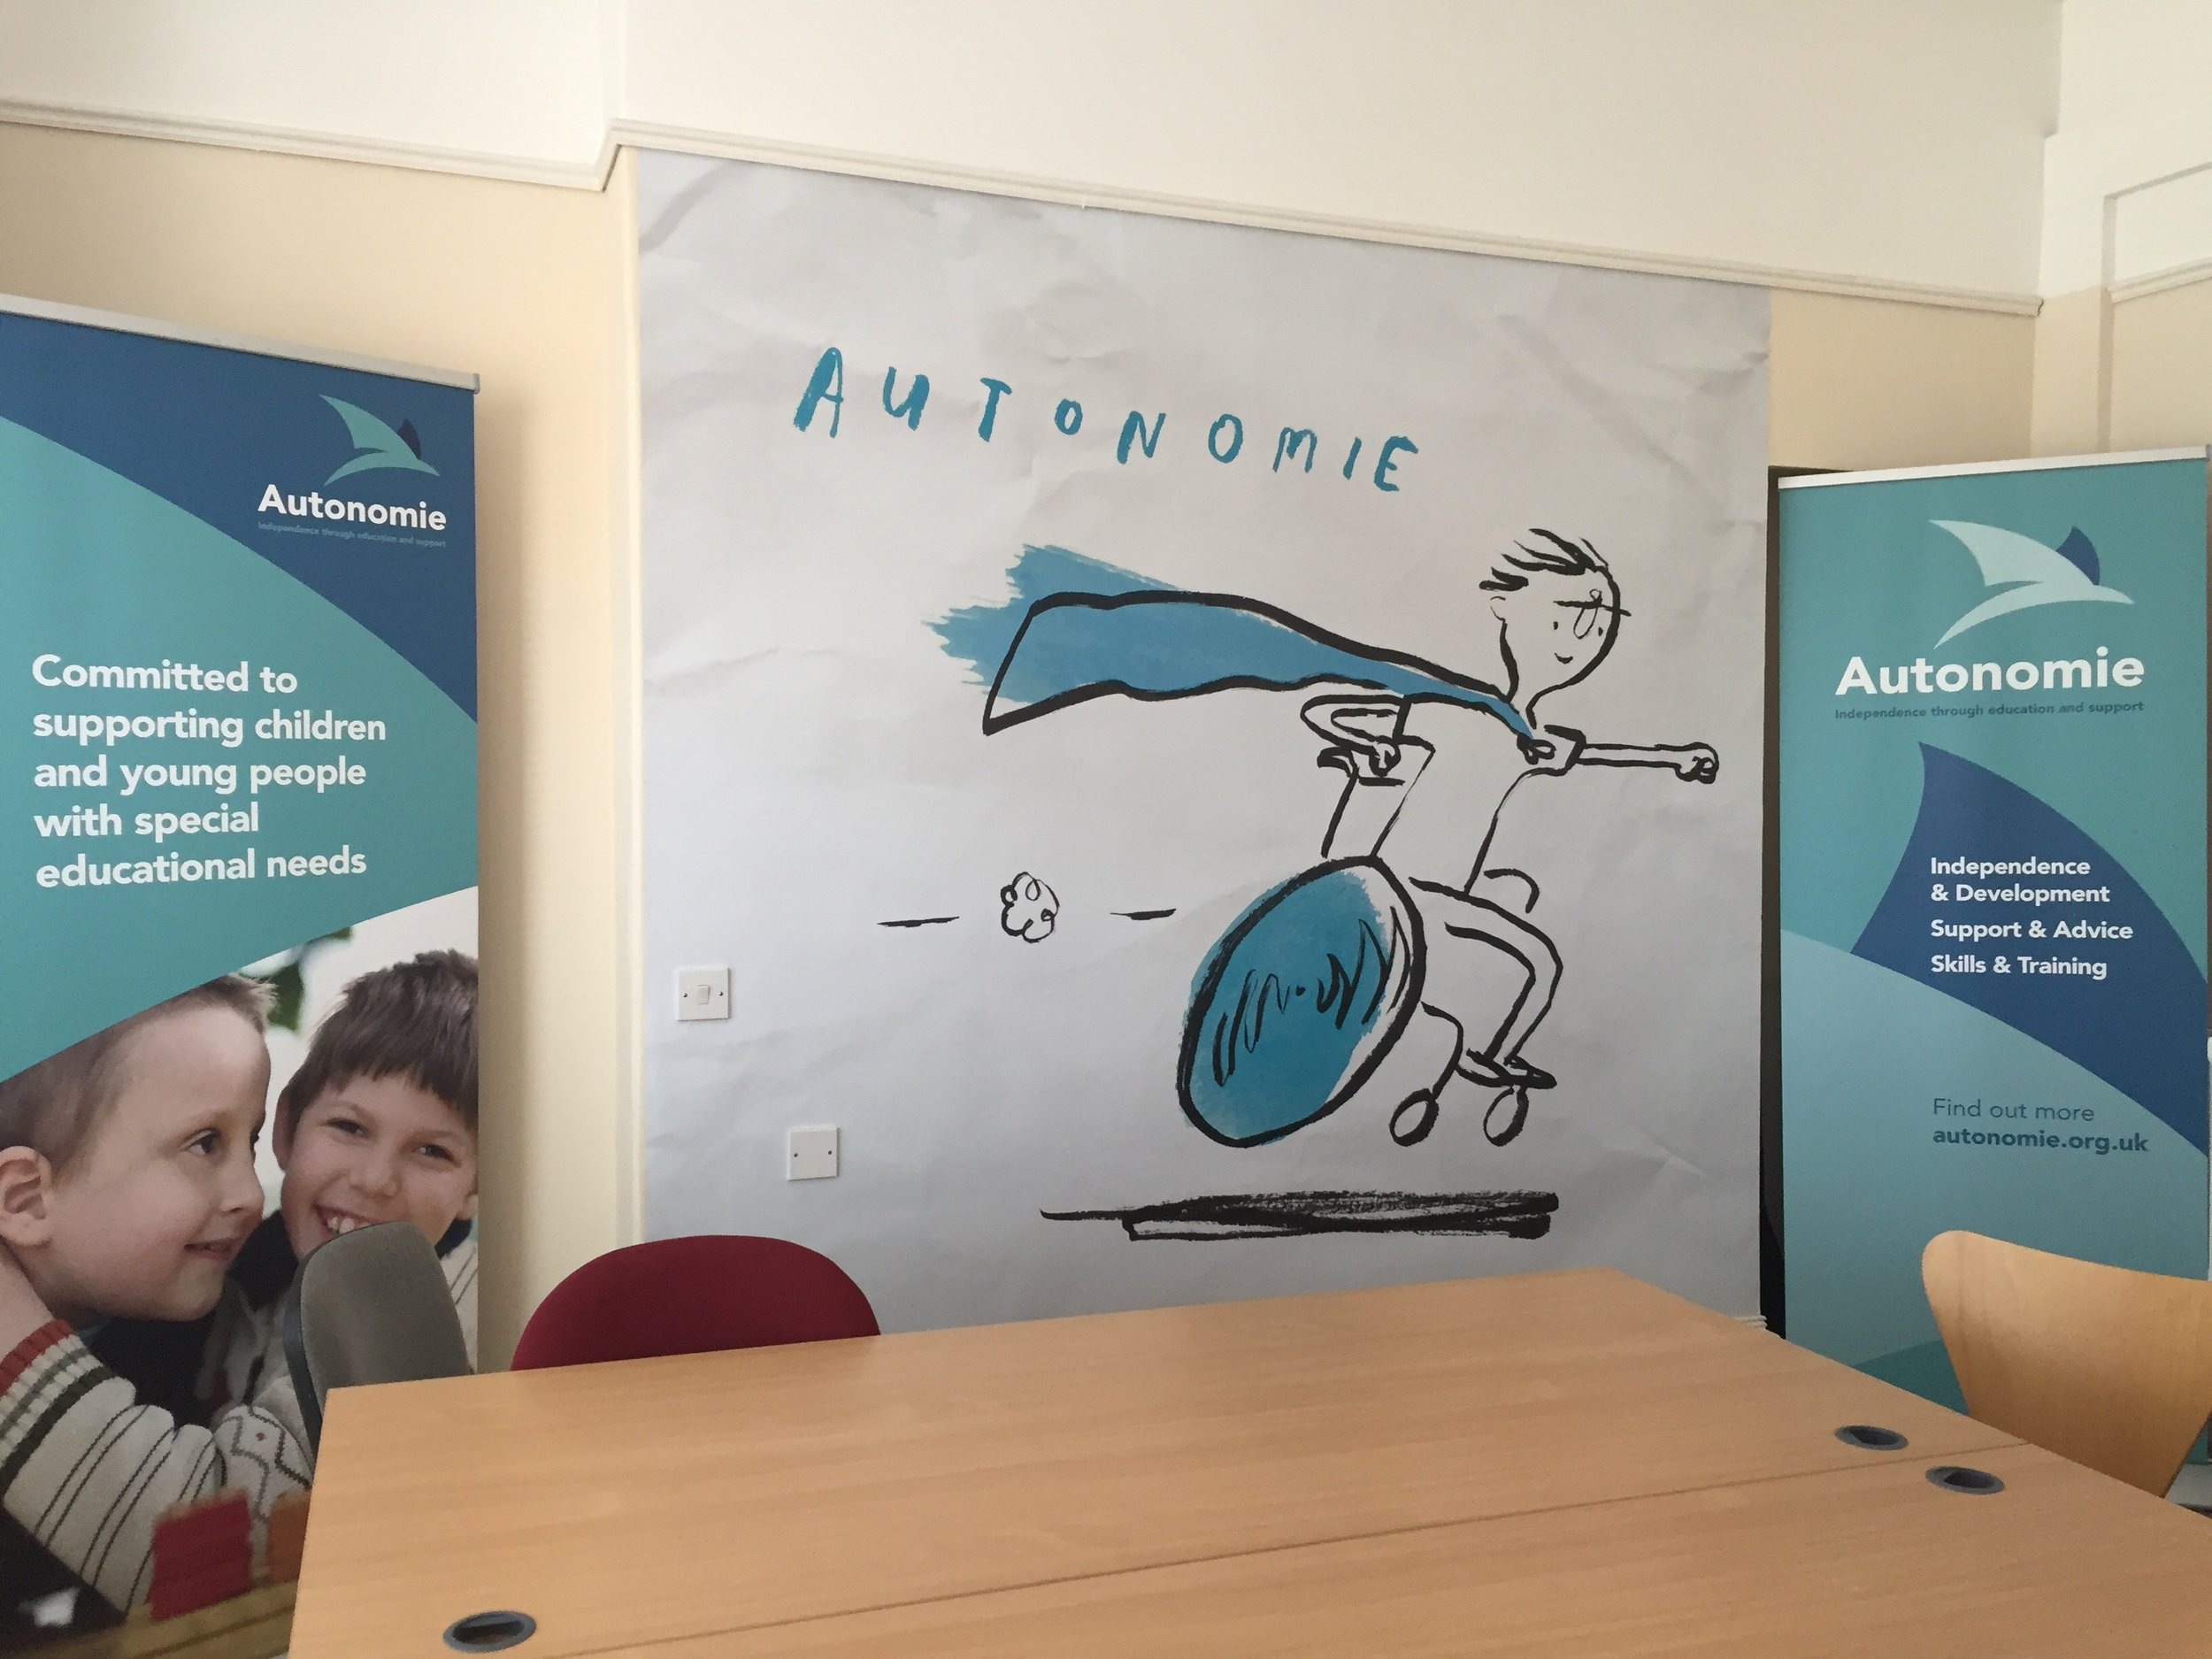 The 'Autonomie Superhero' takes centre stage in the new training room! -